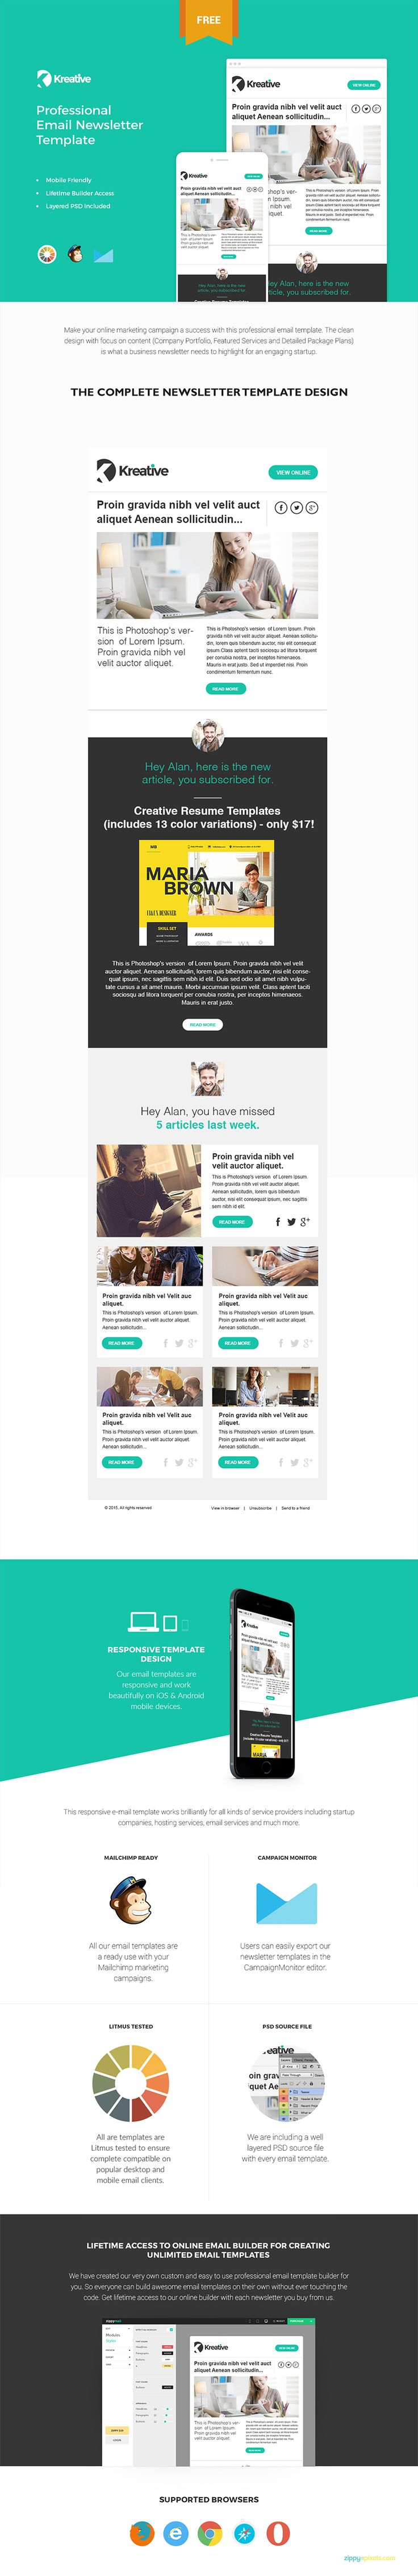 Lovely 1.5 Button Template Huge 10 Tips For Writing A Resume Solid 100 Free Resume Builder And Download 1099 Agreement Template Young 13th Birthday Invitation Templates Brown2 Page Resume Format Example 25  Best Ideas About Html Newsletter Templates On Pinterest ..